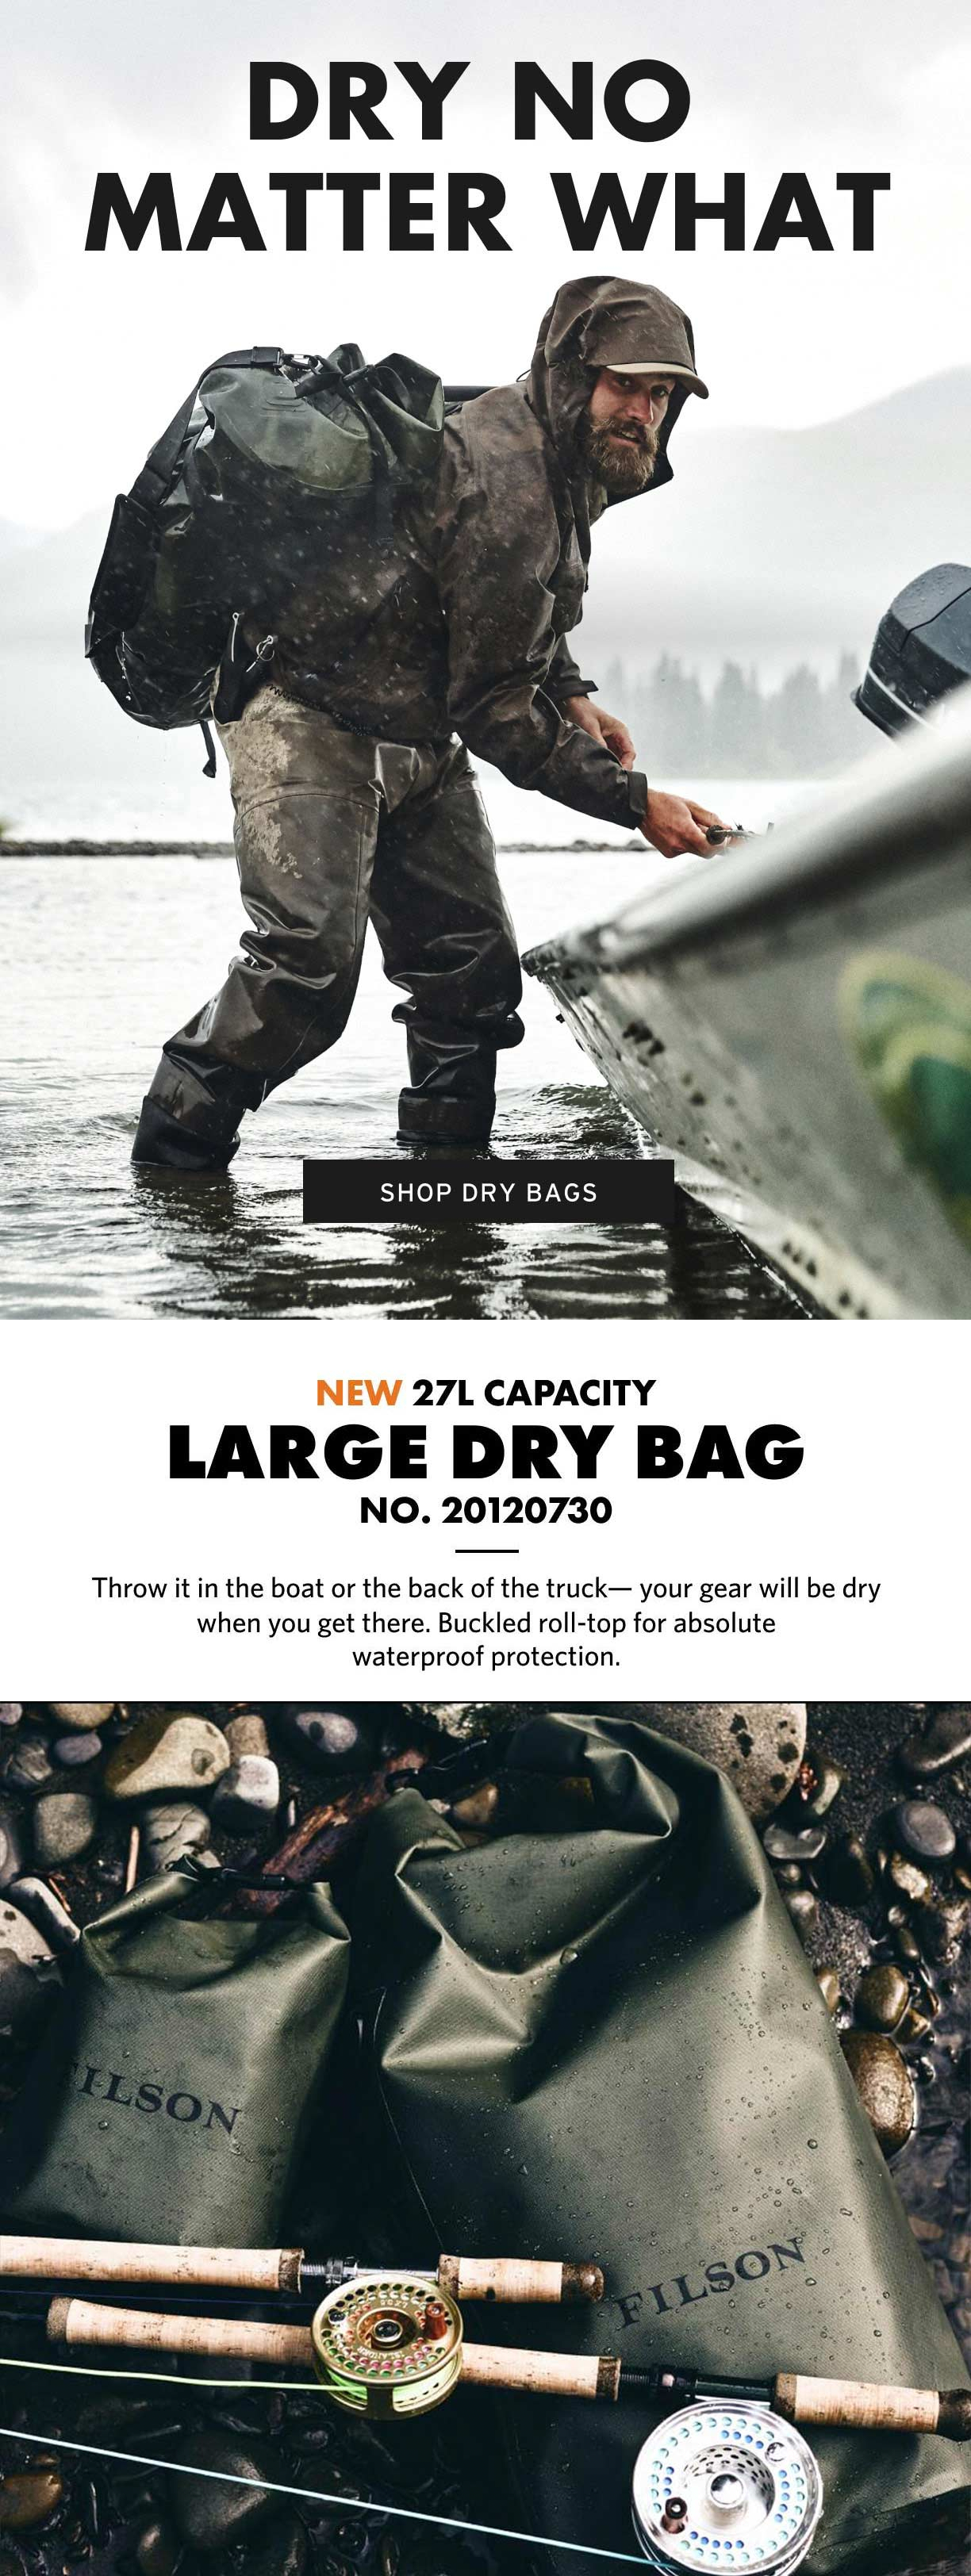 Filson Dry Bag Large Productinformation